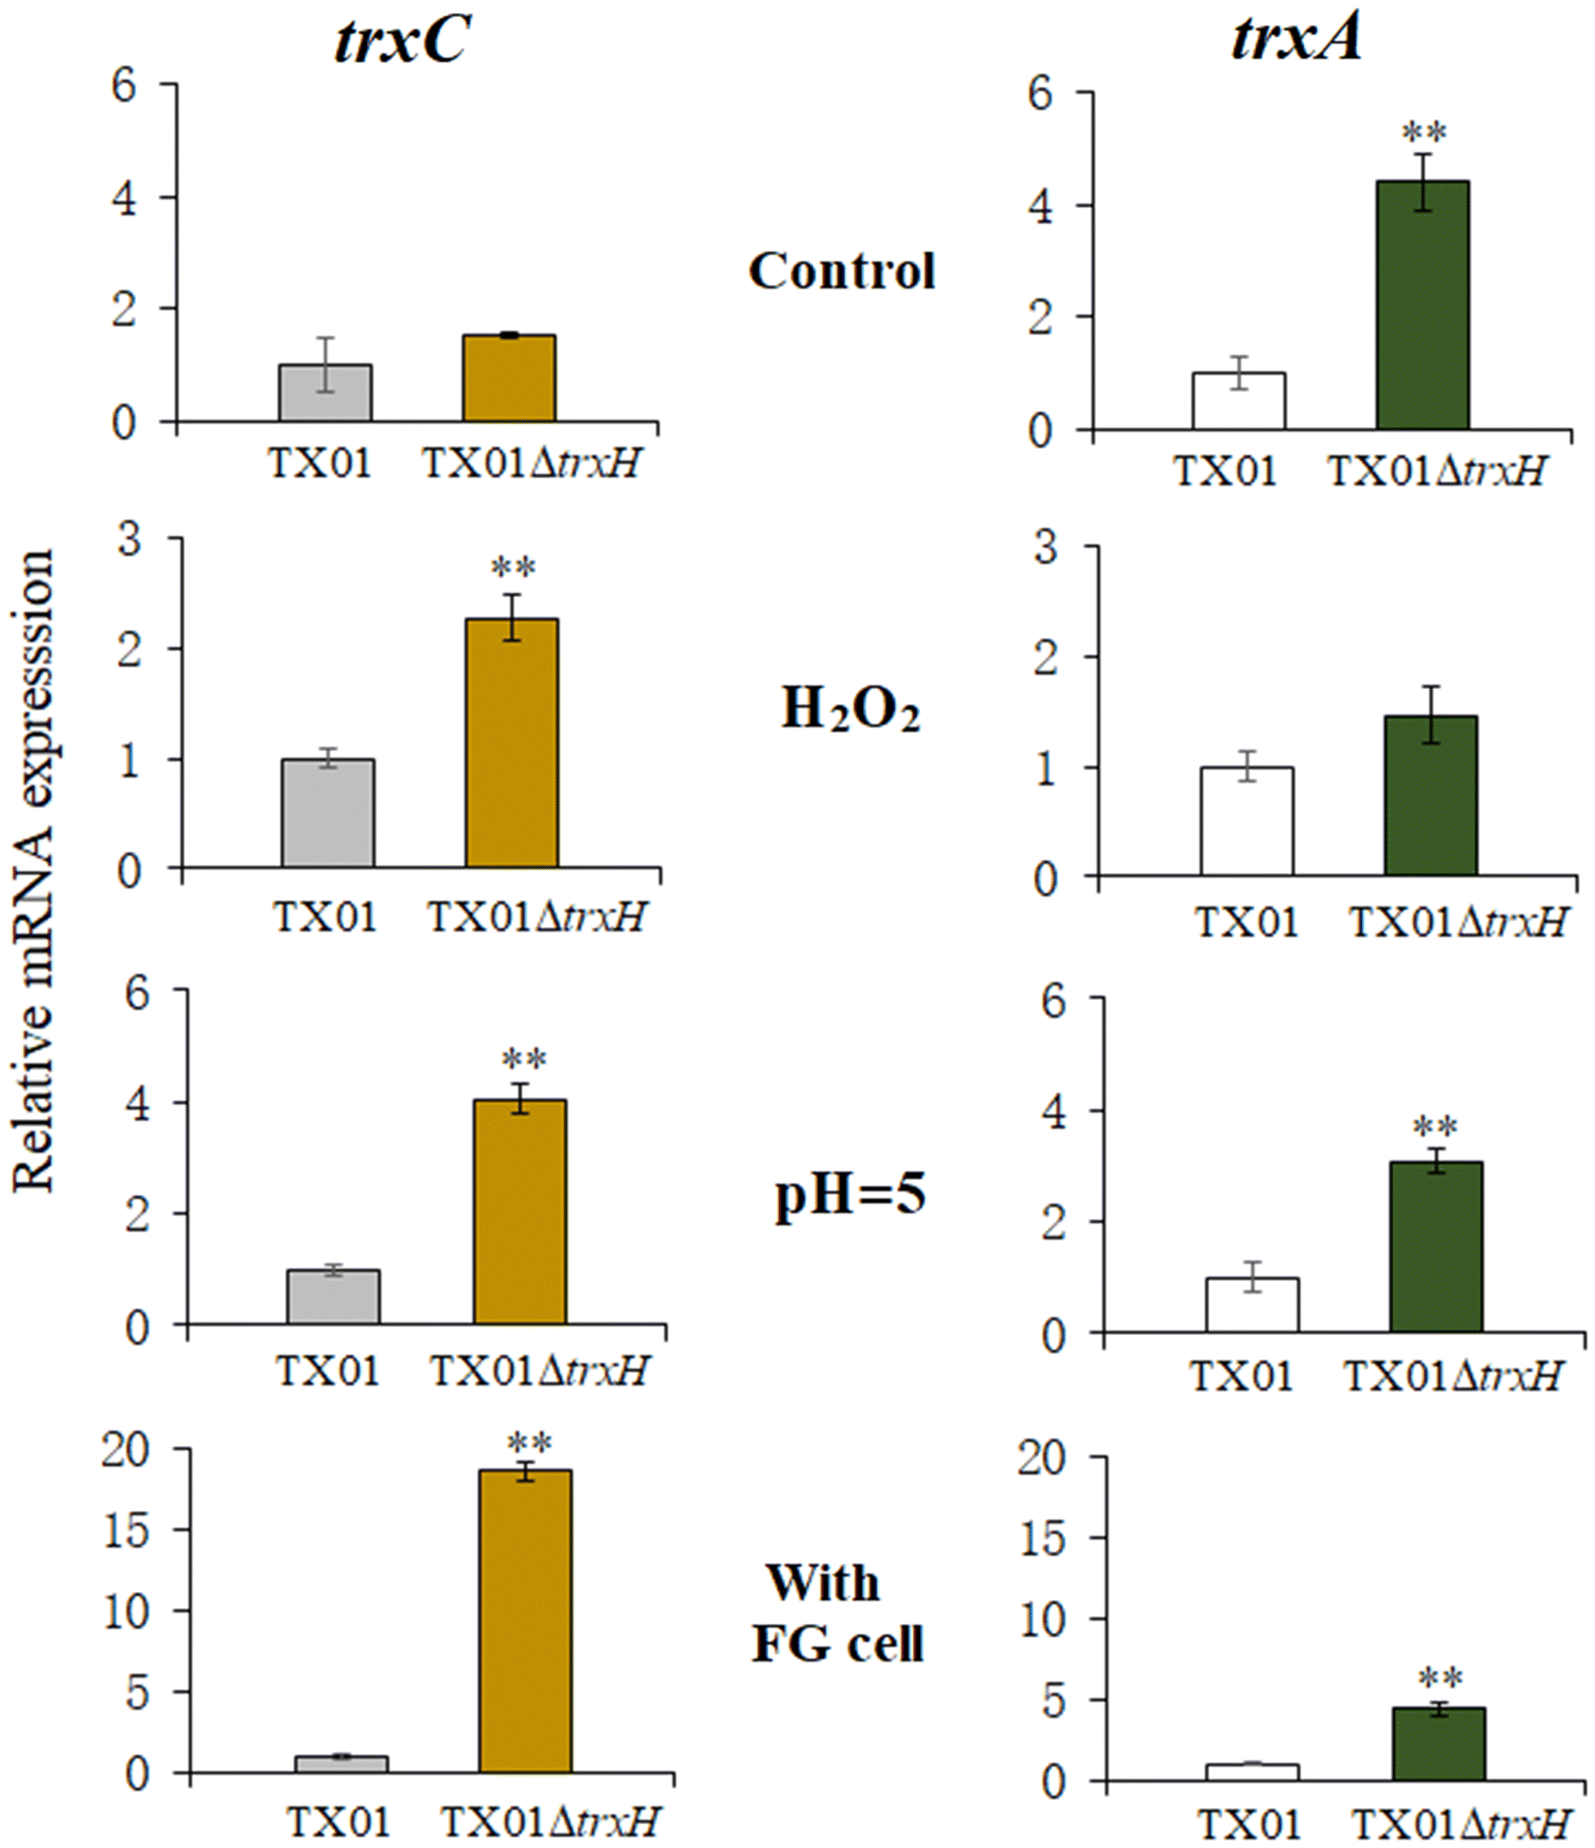 Thioredoxin H (TrxH) contributes to adversity adaptation and